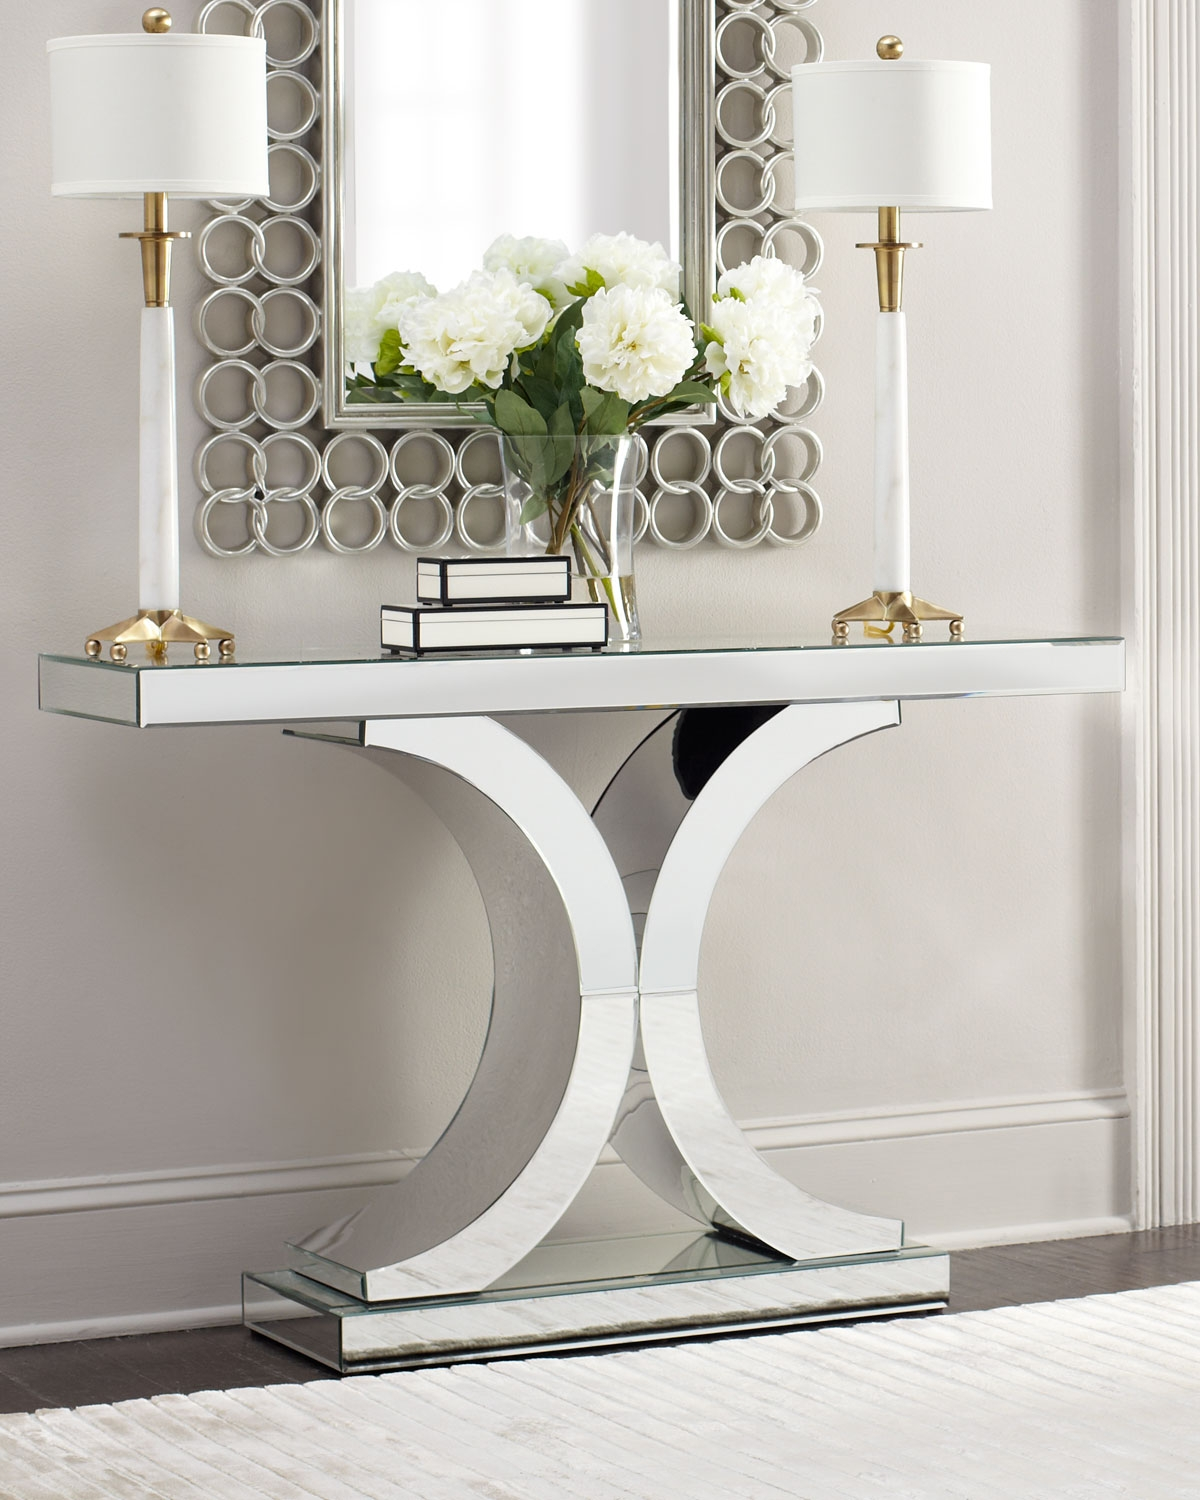 Splendora Mirrored Console Entrance Pinterest Adana Design In Mirrored Occasional Tables (Image 15 of 15)